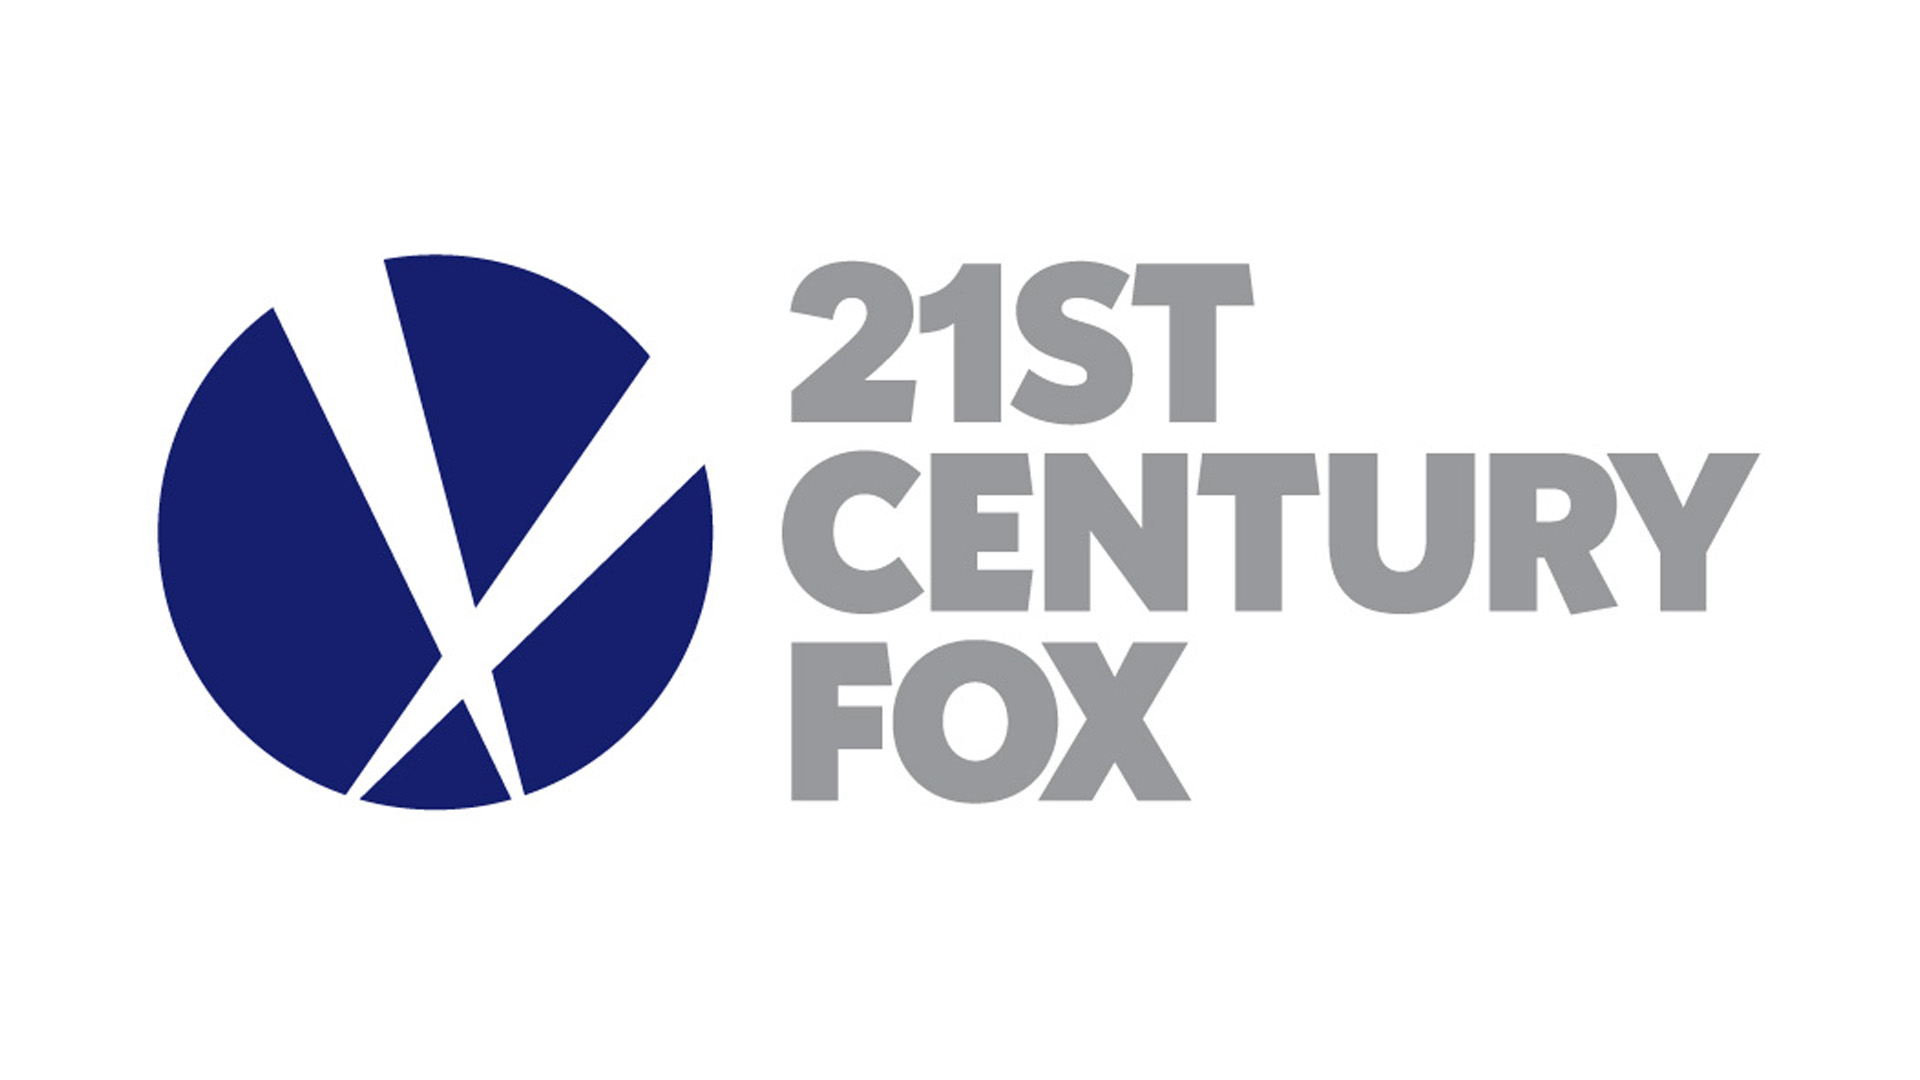 Cover image for With interest in Fox's video content business, is 2017 the beginning of the end for traditional TV and film companies?